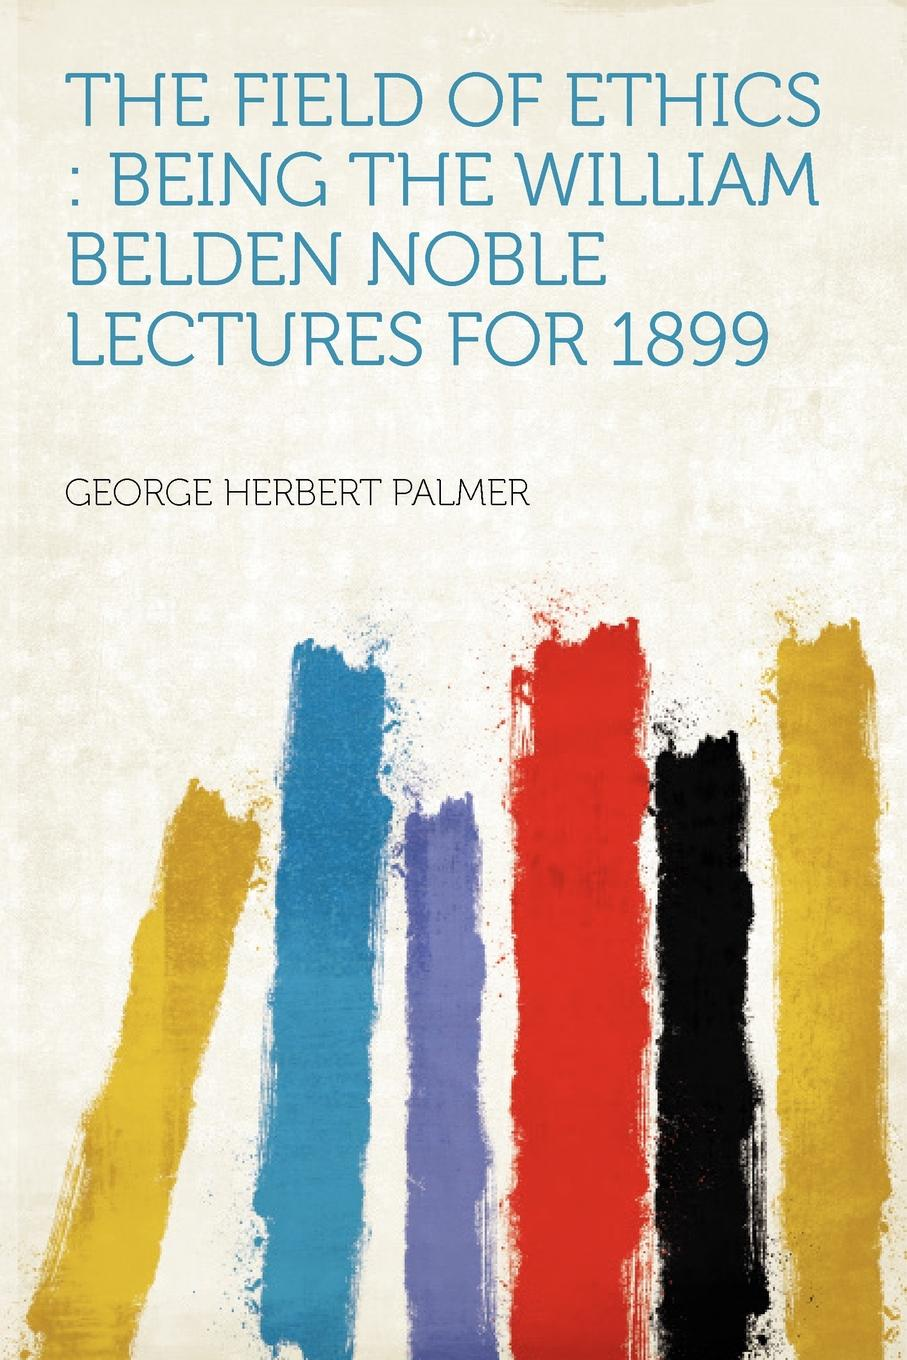 The Field of Ethics. Being the William Belden Noble Lectures for 1899